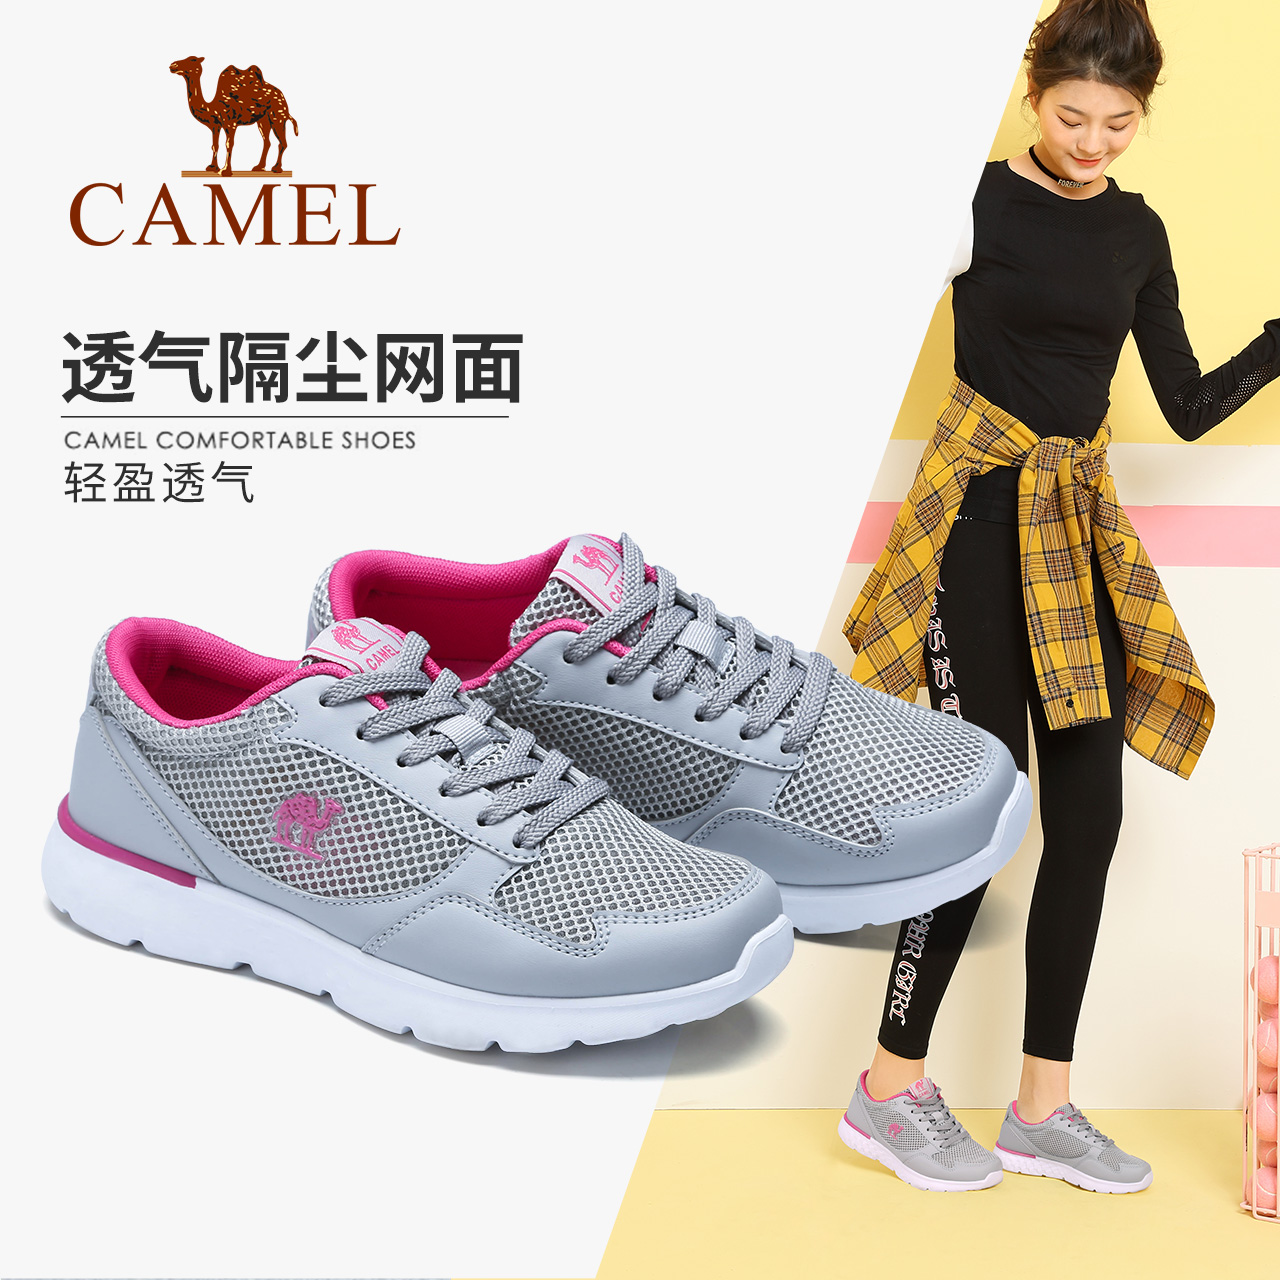 Camel women's shoes 2018 spring new light cushioning fashion running shoes fashion outdoor leisure breathable mesh shoes women